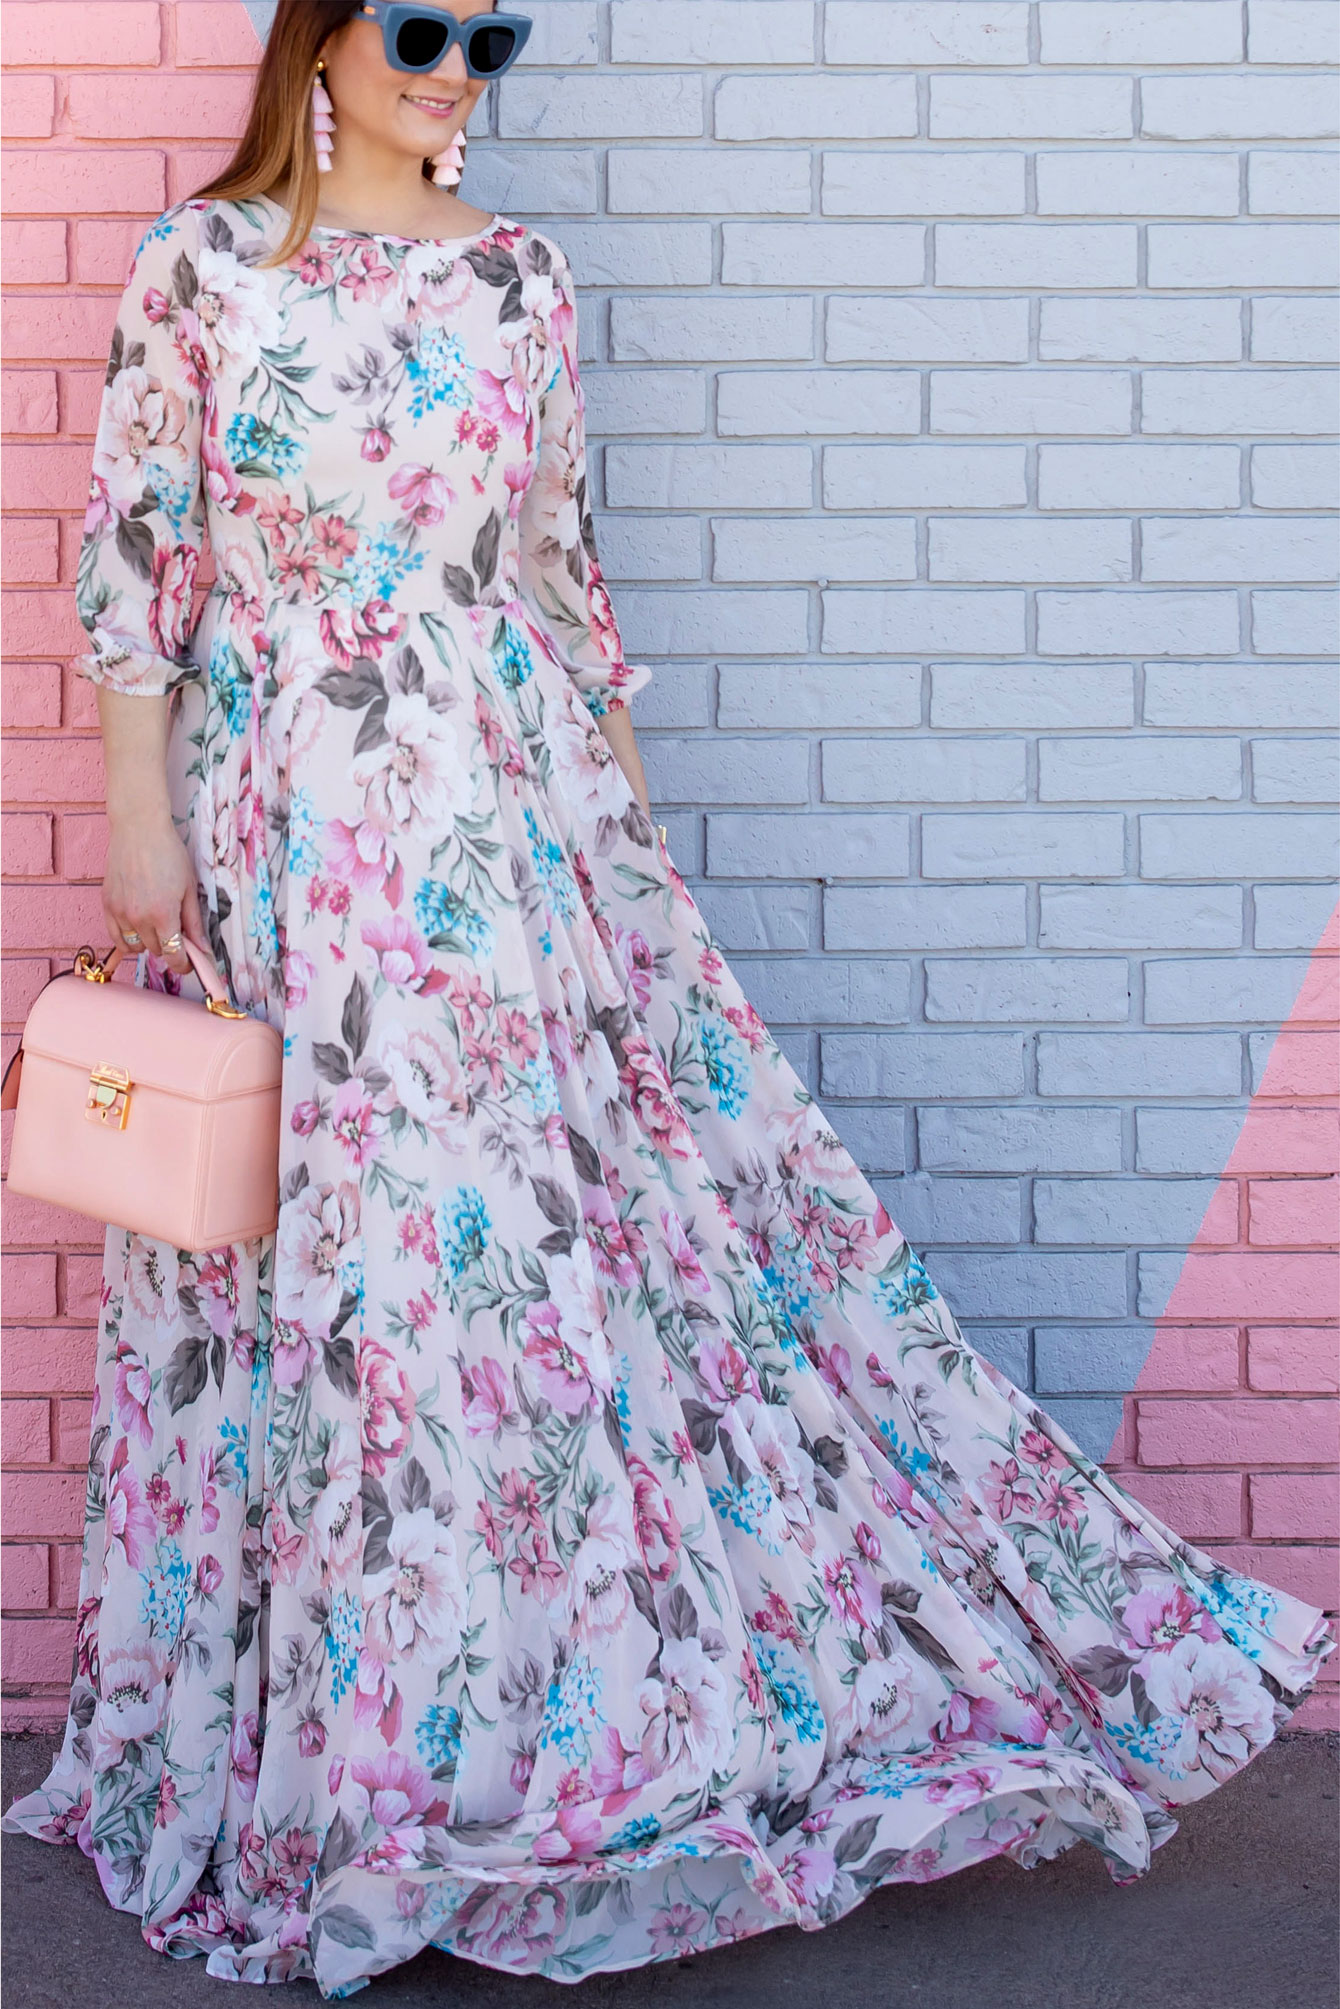 Yumi Kim Woodstock Maxi Dress Floral Shopbop Revolve